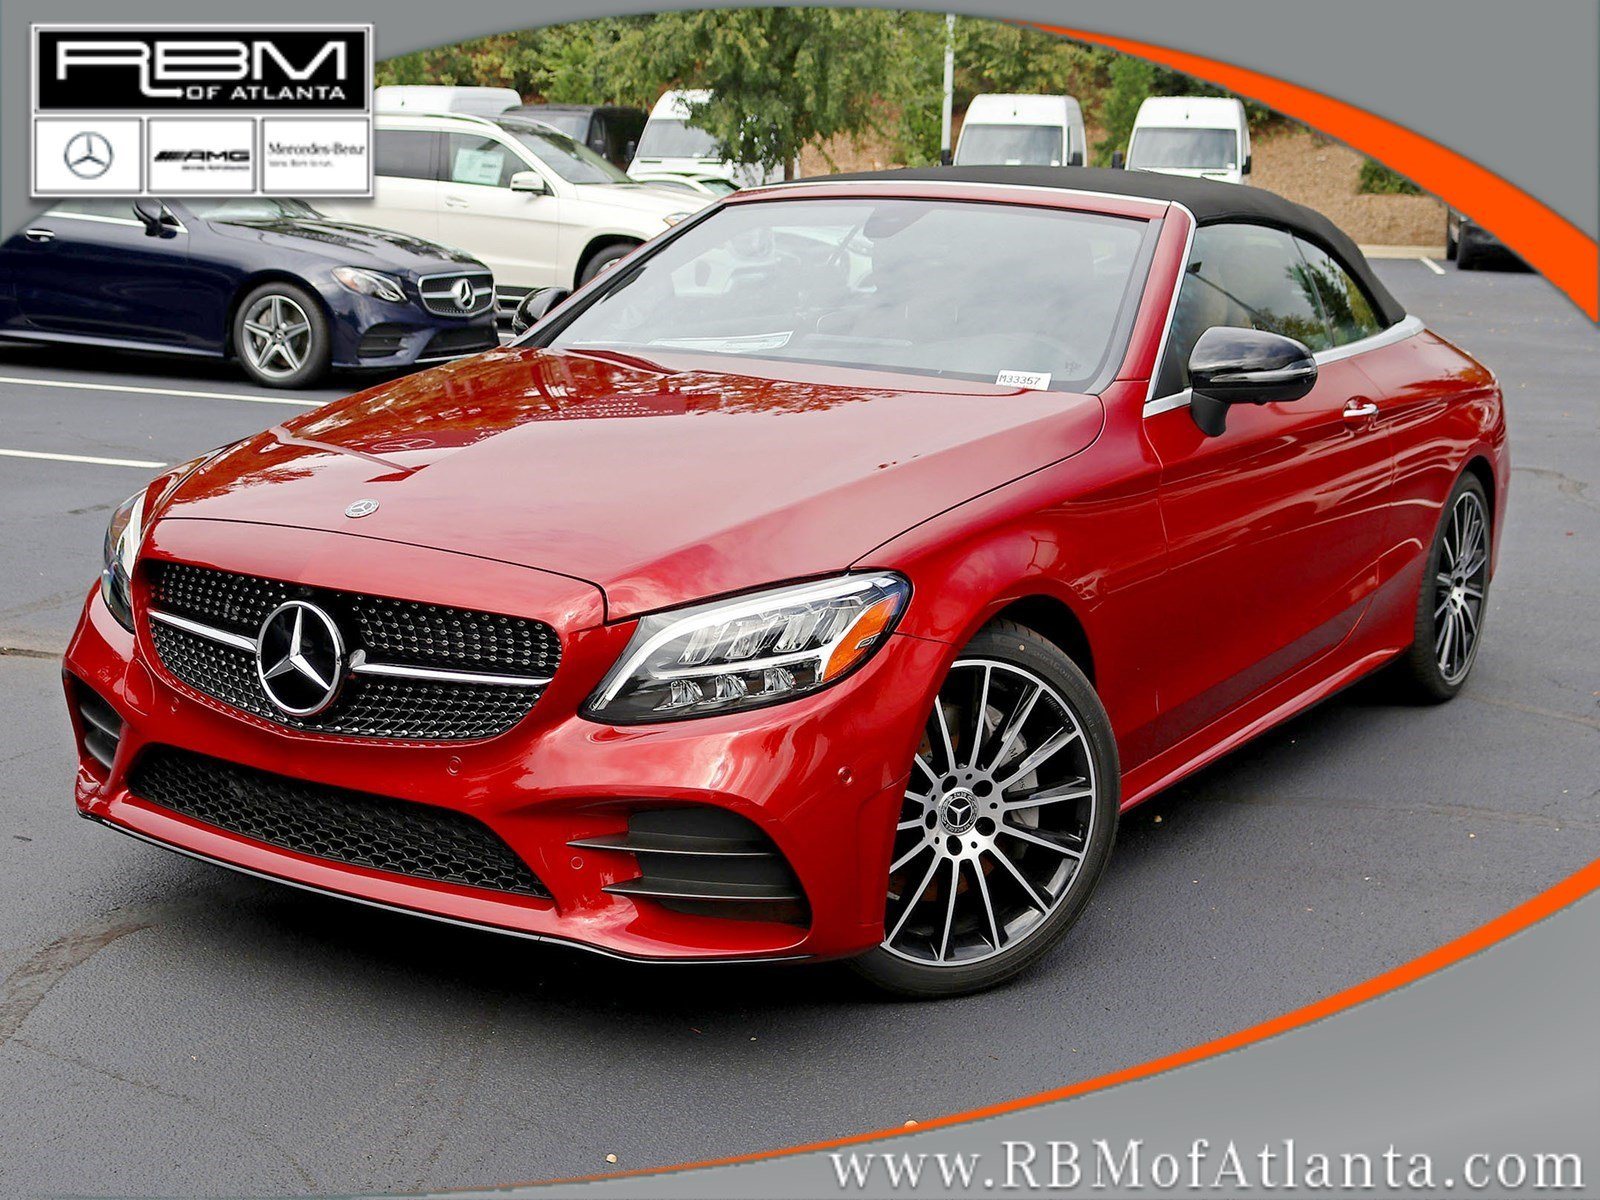 New 2019 Mercedes Benz C Class C 300 Cabriolet CABRIOLET in Atlanta